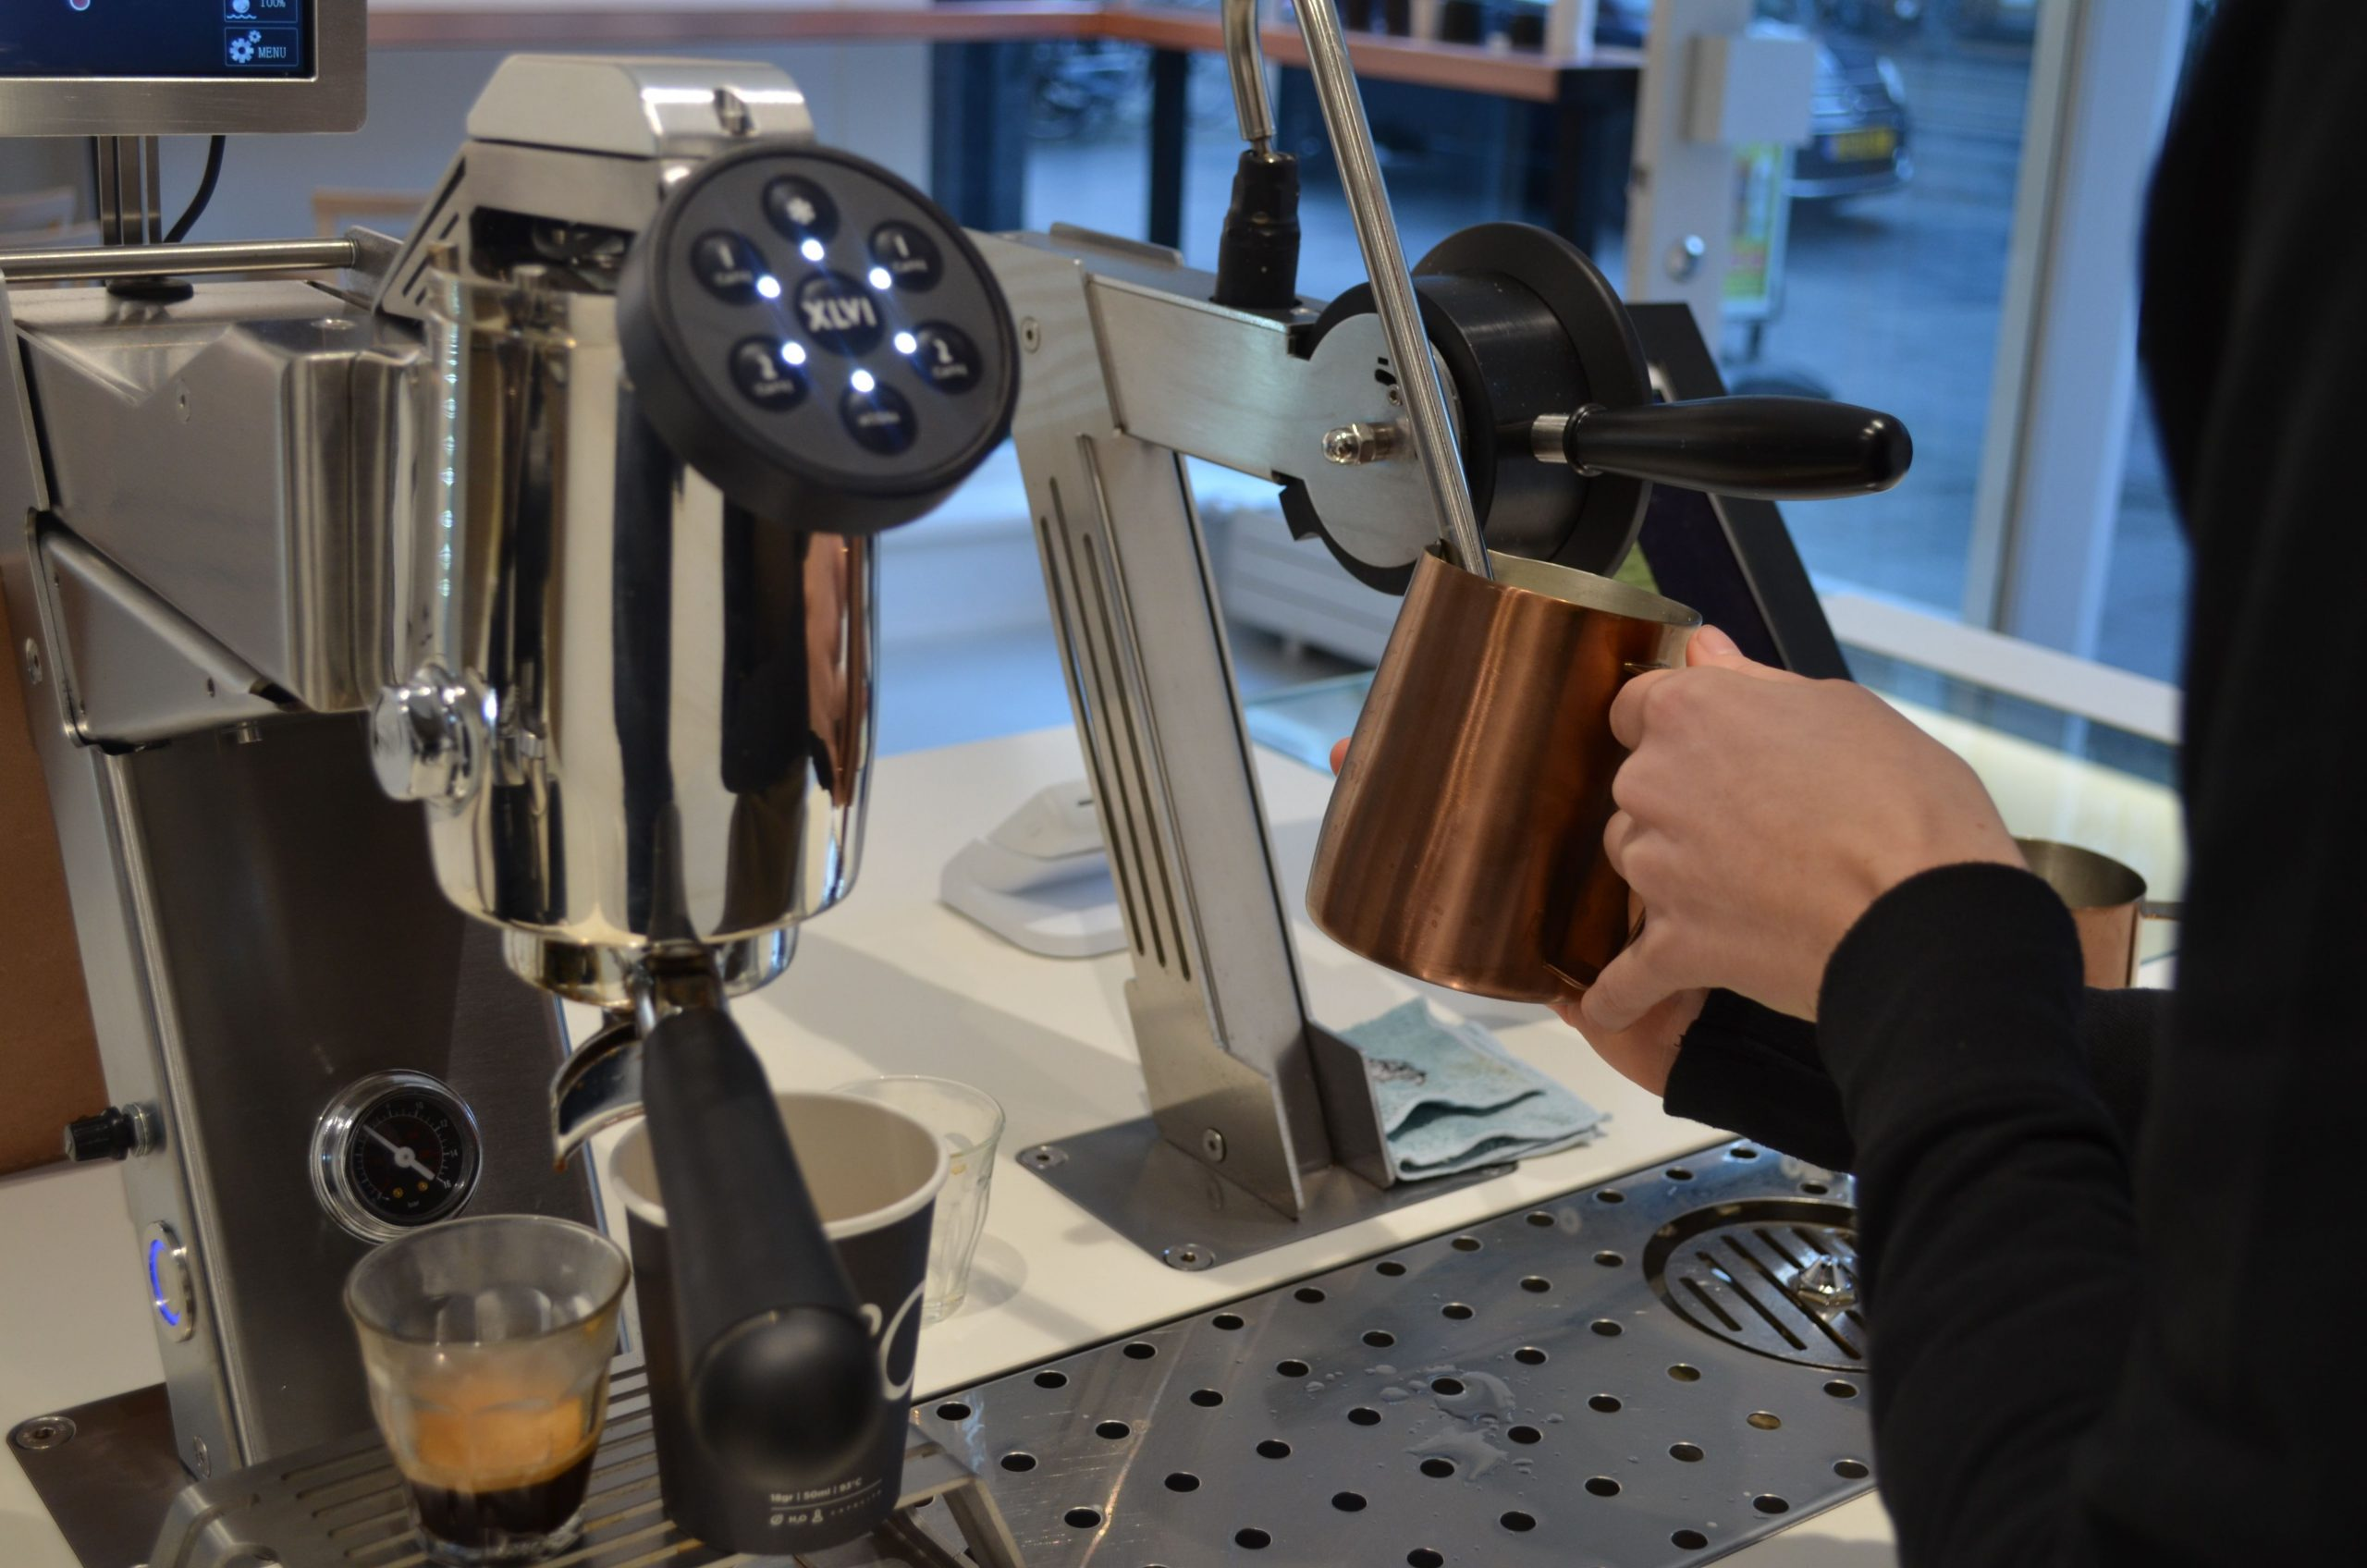 Espressobar Amsterdam, coffee machine in use